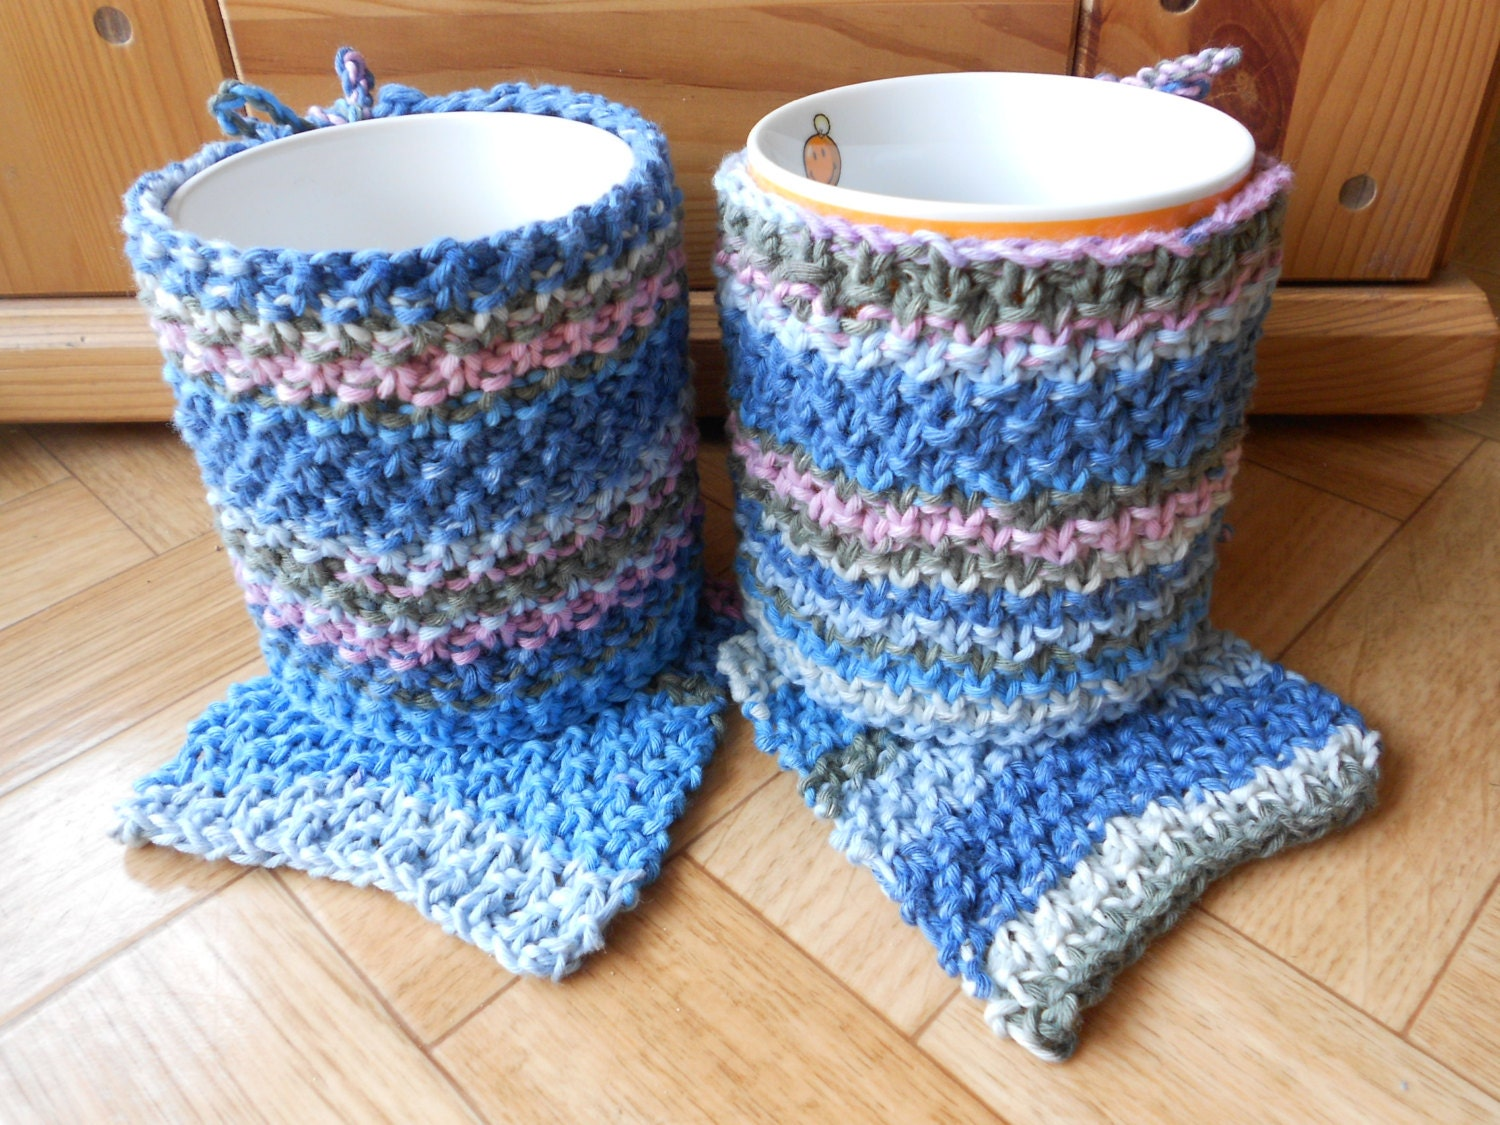 Knitted Mug Warmers Pattern : Knit mug cozies and coasters Hand knitted by CuteCreationsByLea